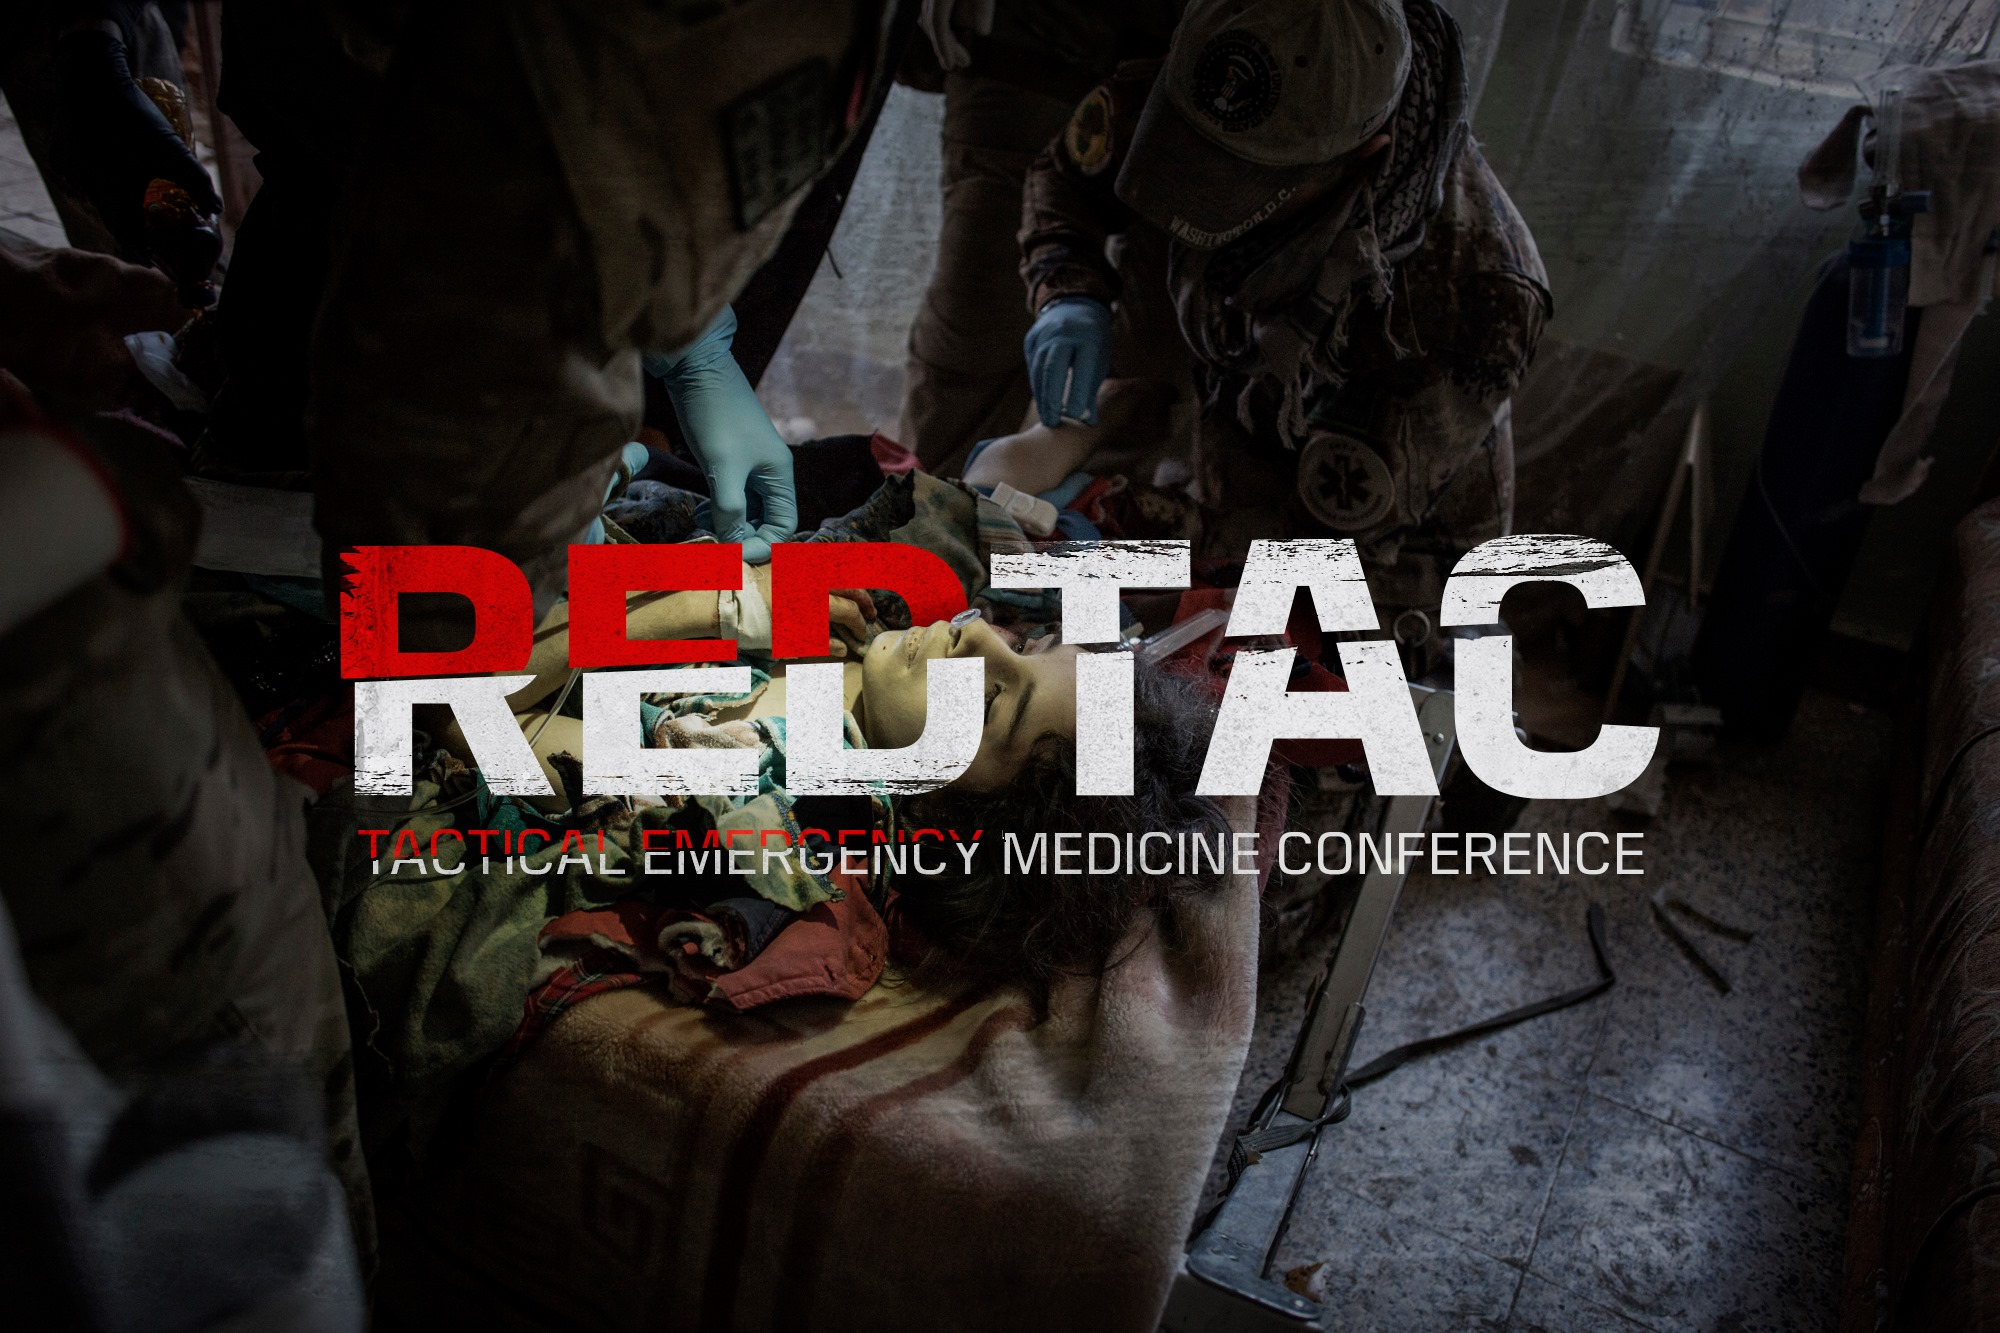 REDTAC - Tactical Emergency Medicine Conference